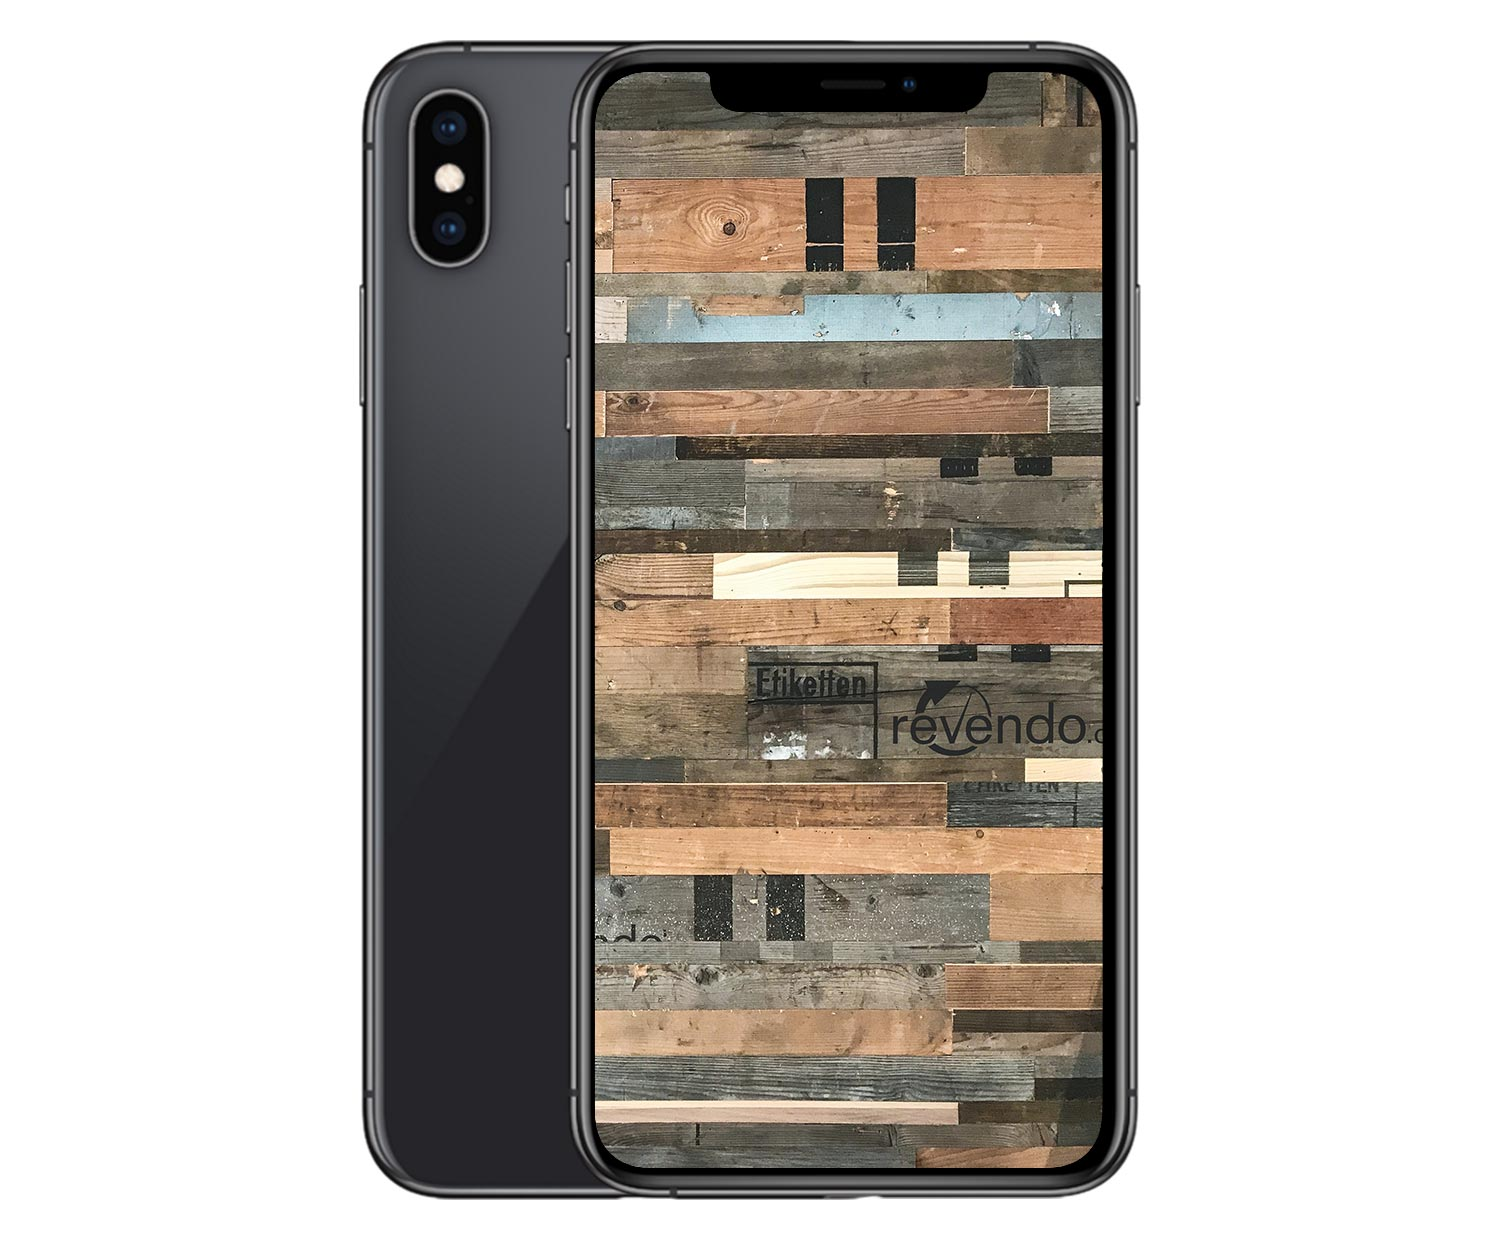 apple iphone xs max dual sim 256 gb space grau. Black Bedroom Furniture Sets. Home Design Ideas